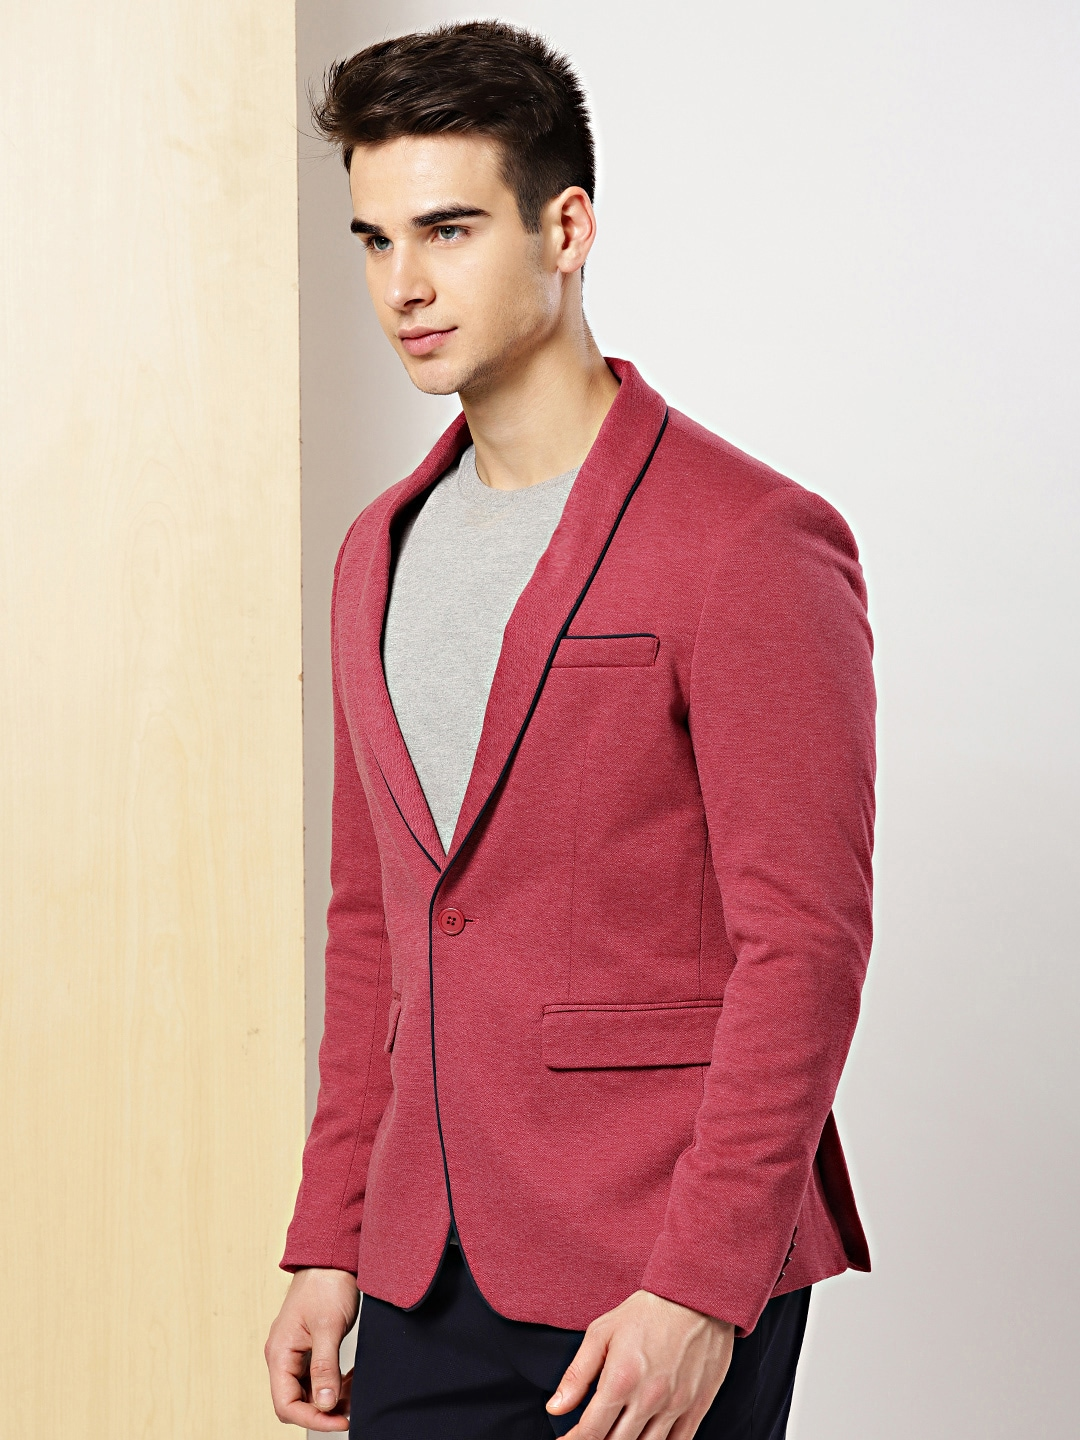 0f45d7296a3 Invictus Maroon Solid Slim Fit Jacket   Blazers for men price - Best ...